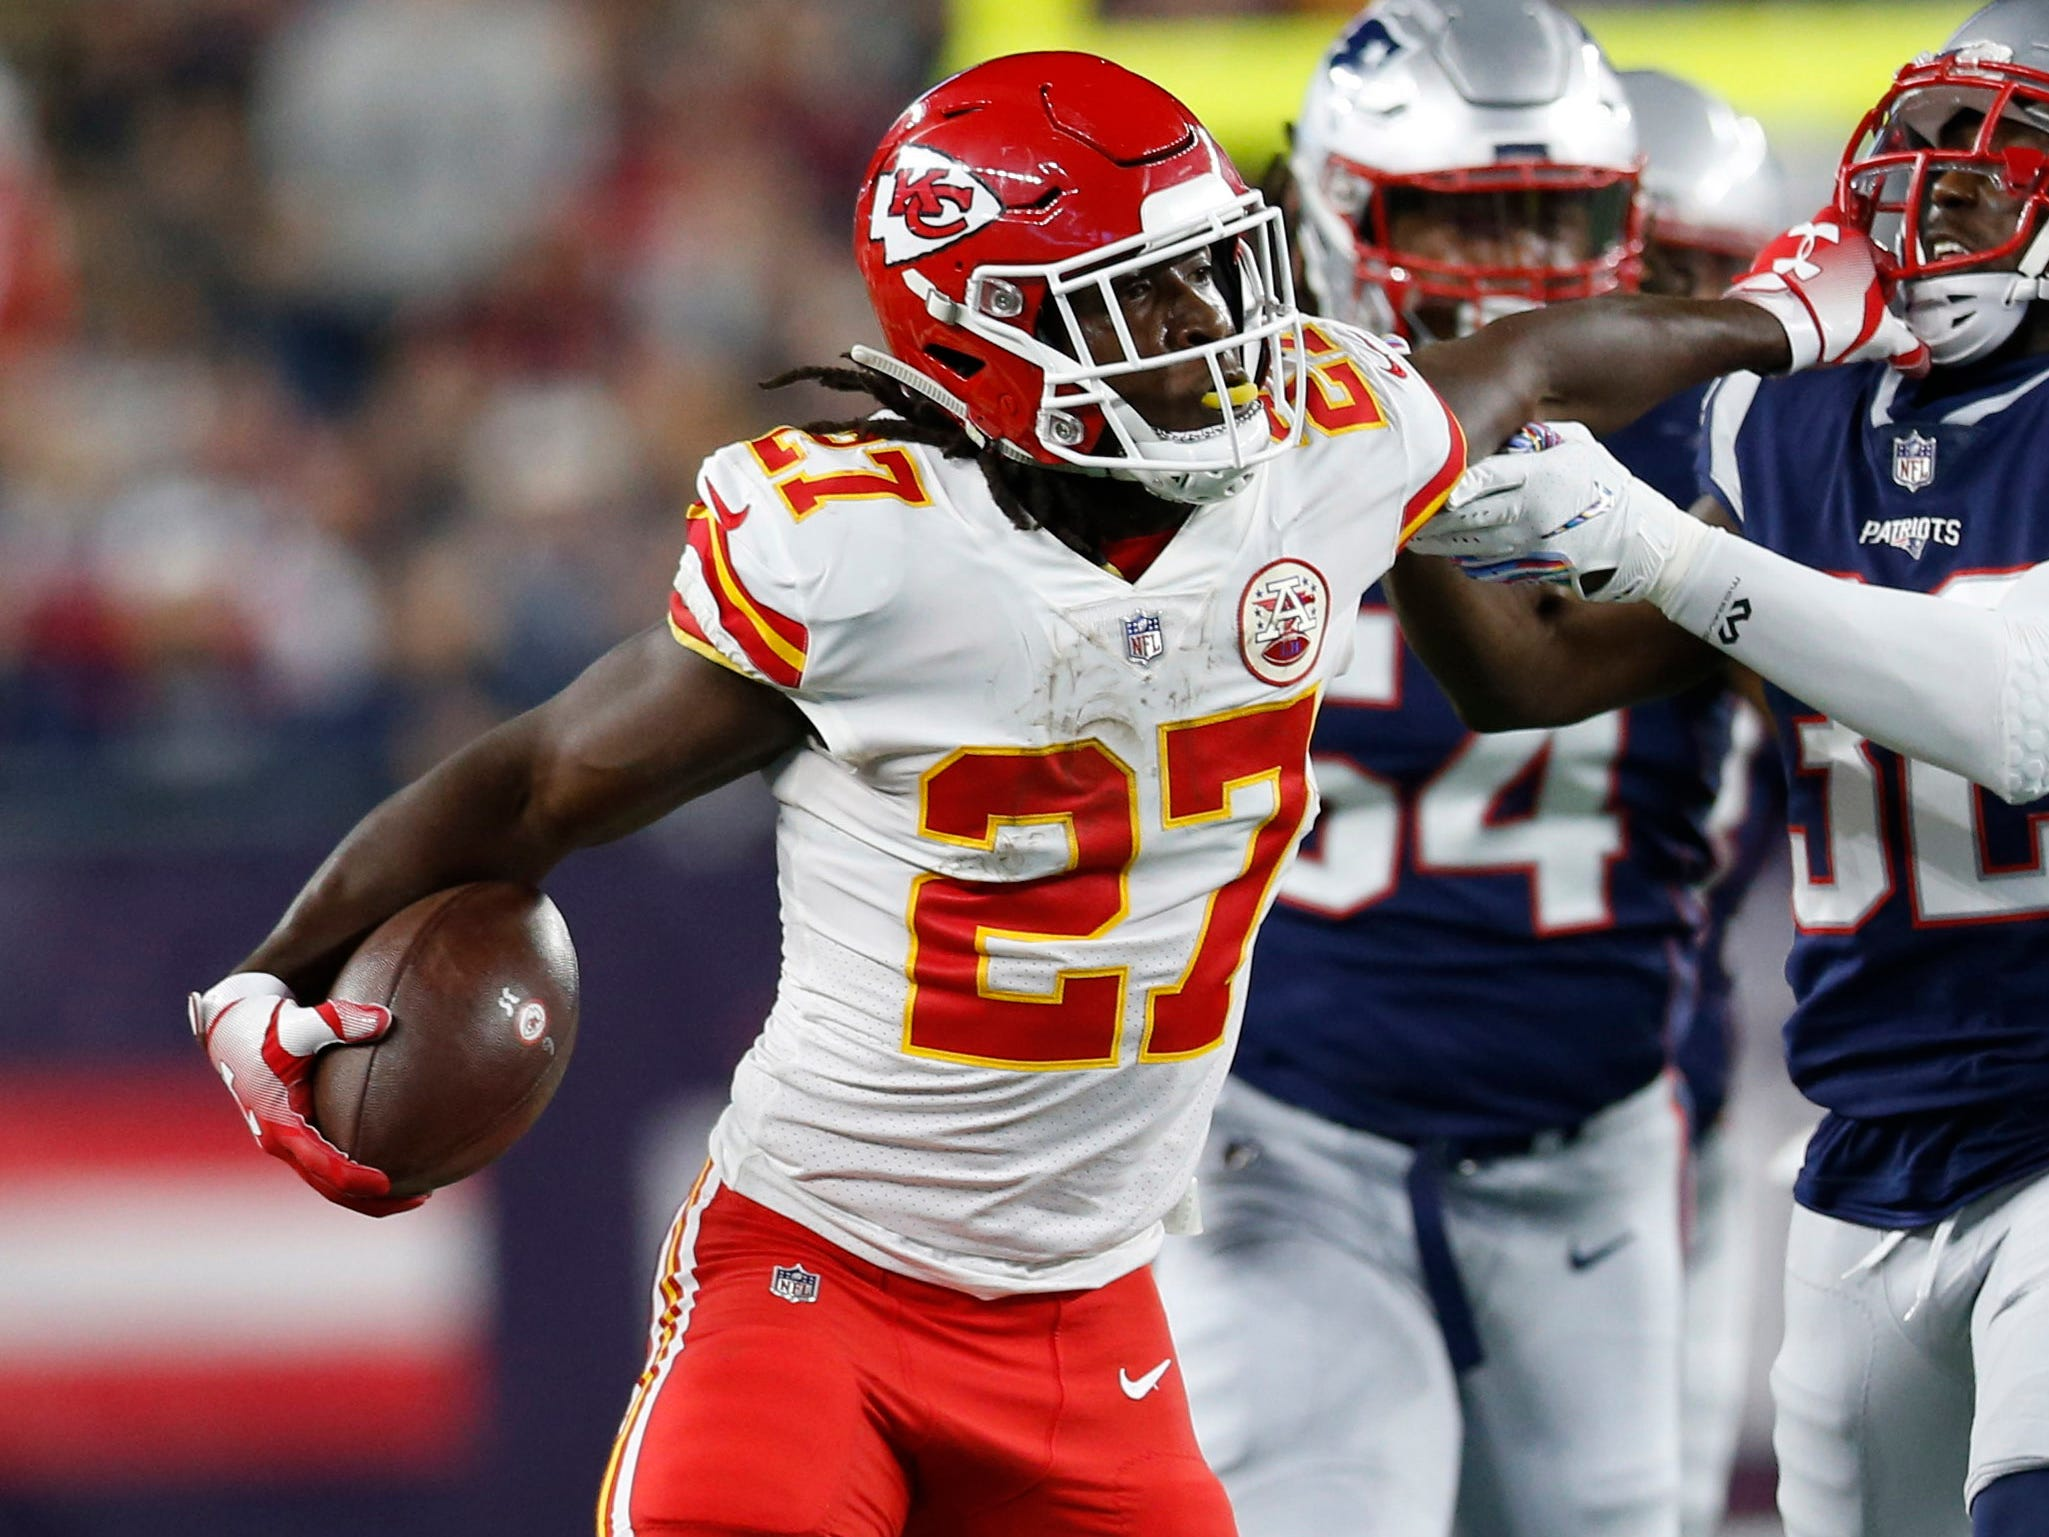 Chiefs running back Kareem Hunt